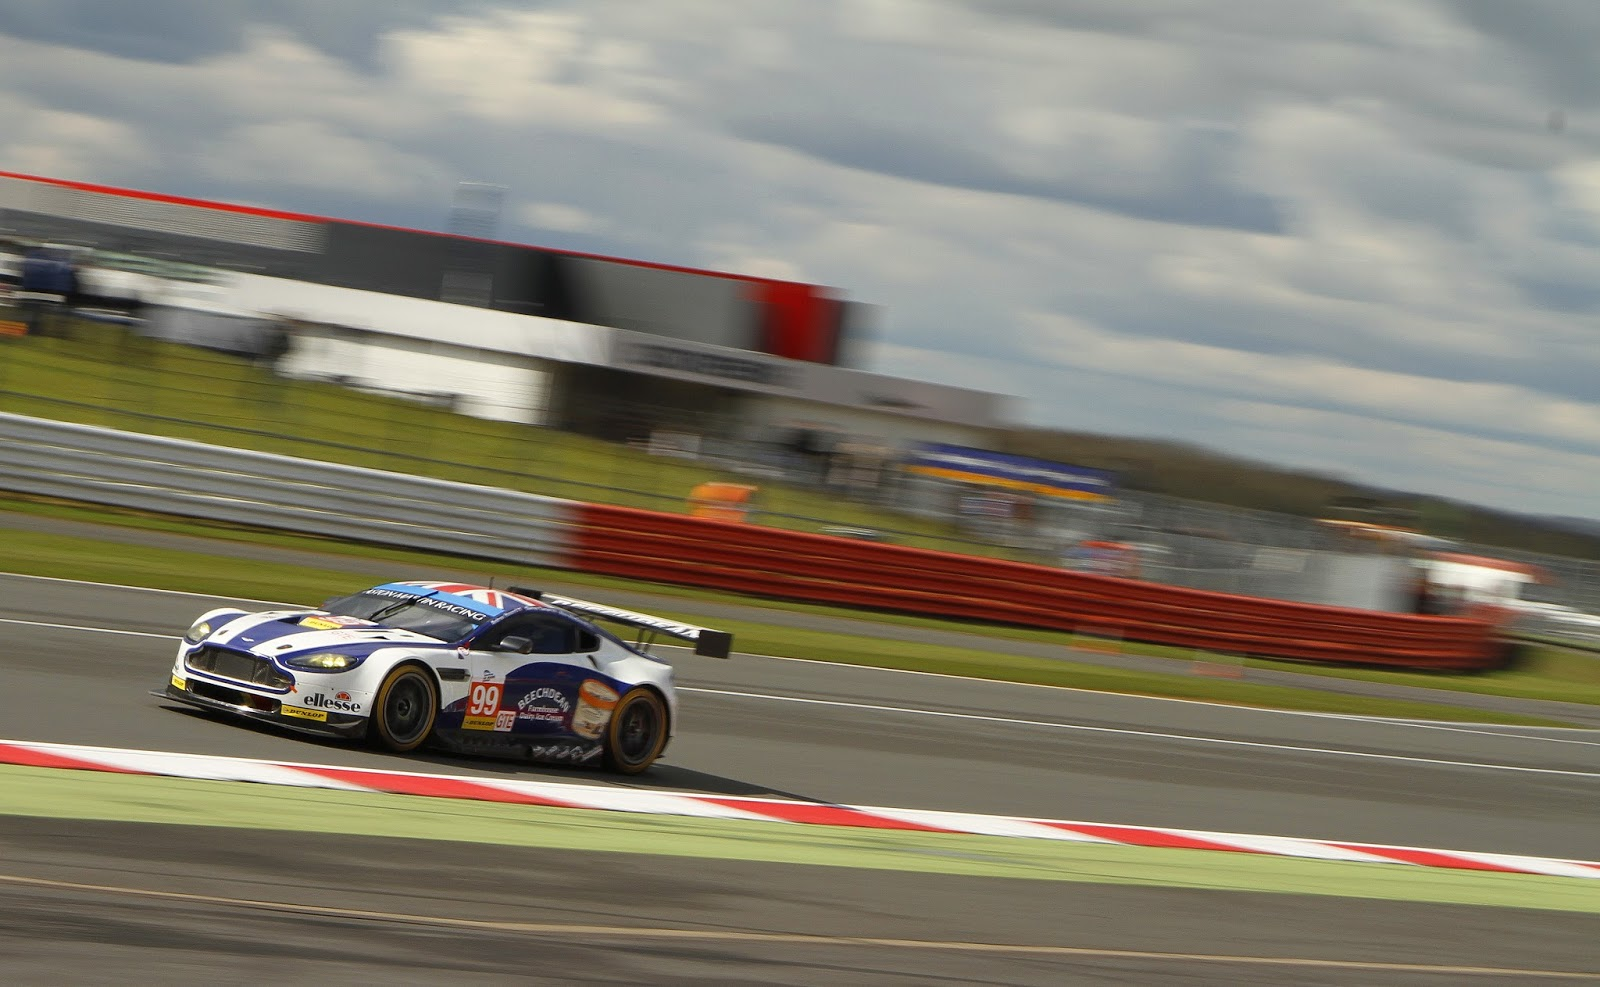 With beechdean motorsport presently undertaking qualifying for the second round of this years british gt championship at rockingham today the provisional